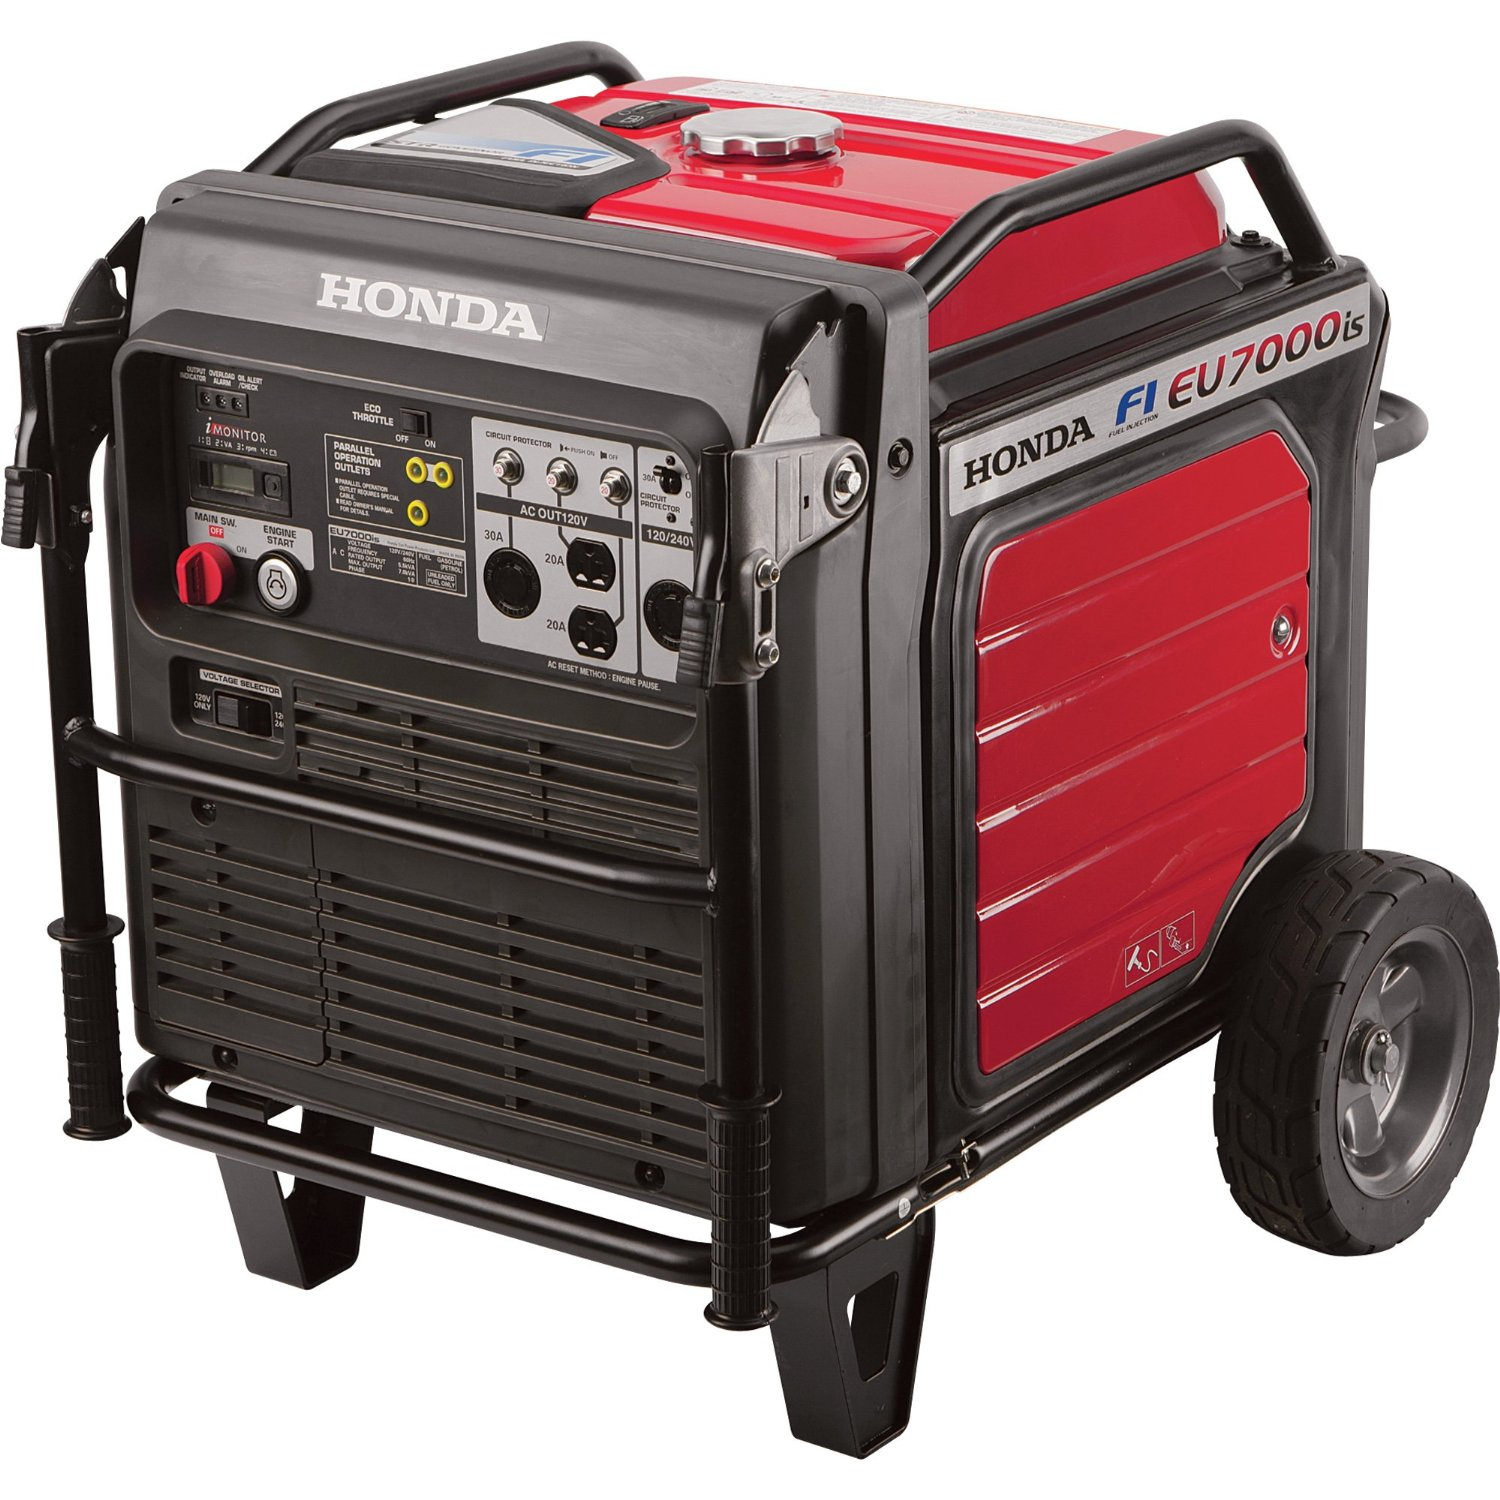 A Honda generator can keep power going when a storm cuts your home's  connection to the